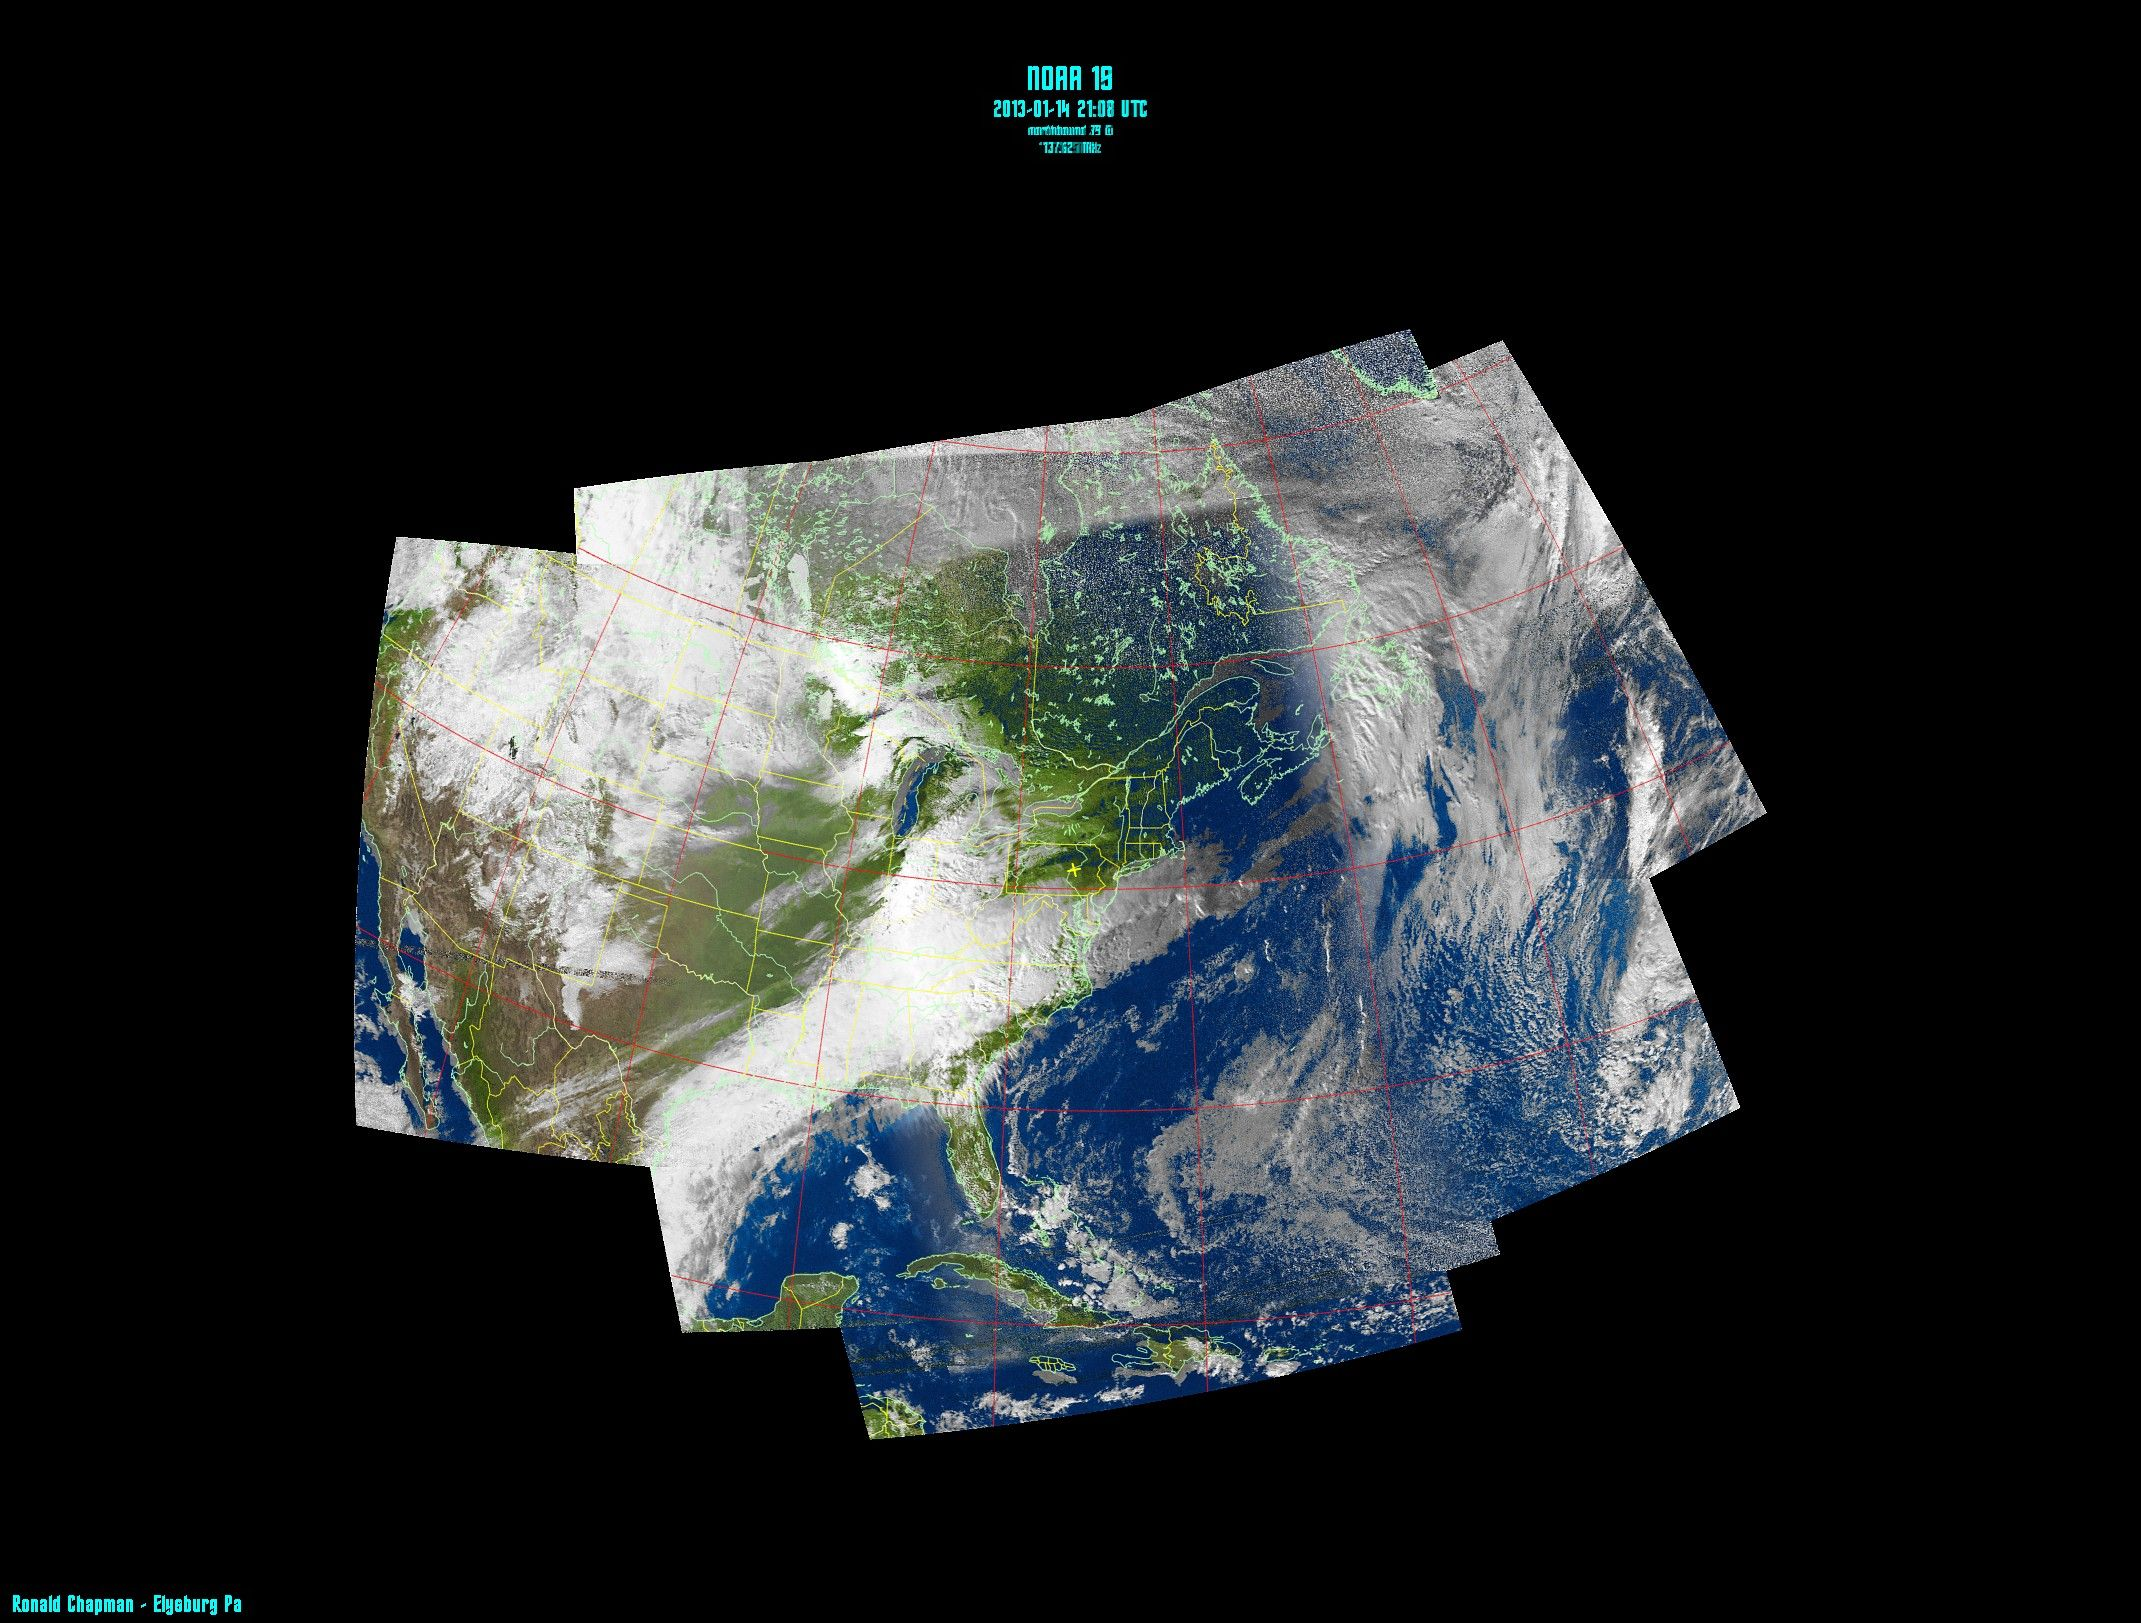 1142013 This is a composite NOAA weather satellite image